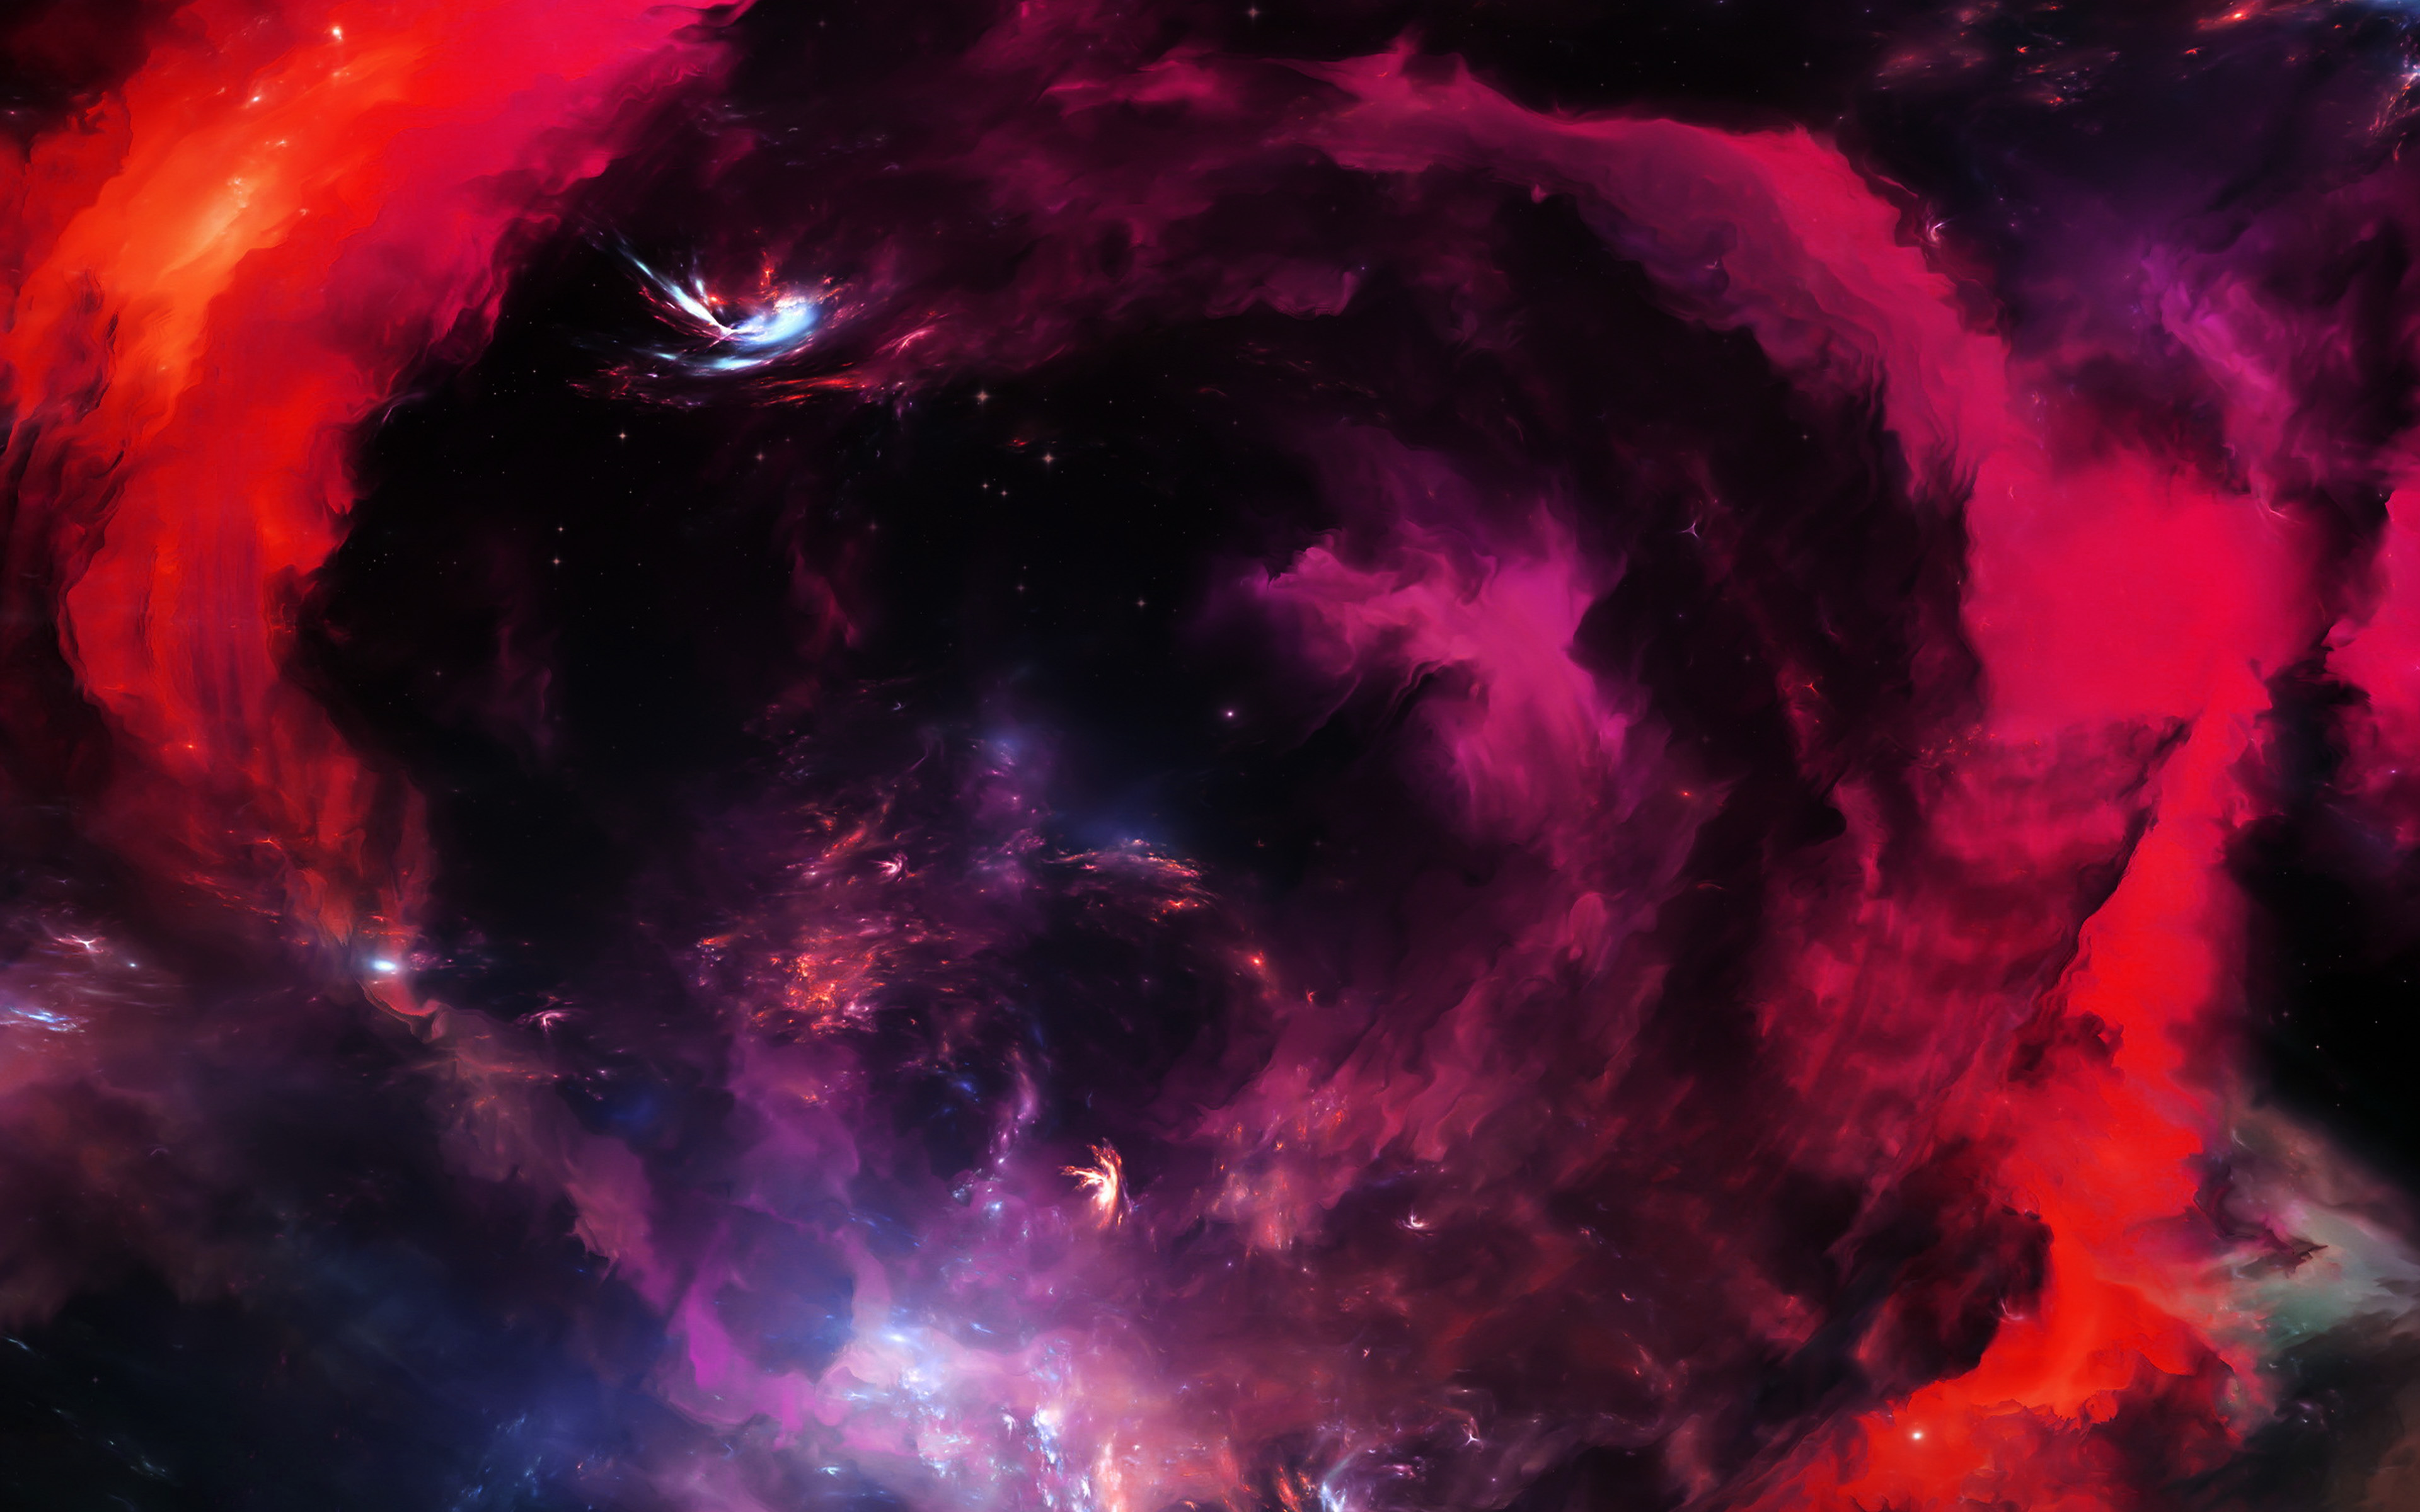 Wallpaper Horsehead Nebula red HD Space Wallpaper Download High